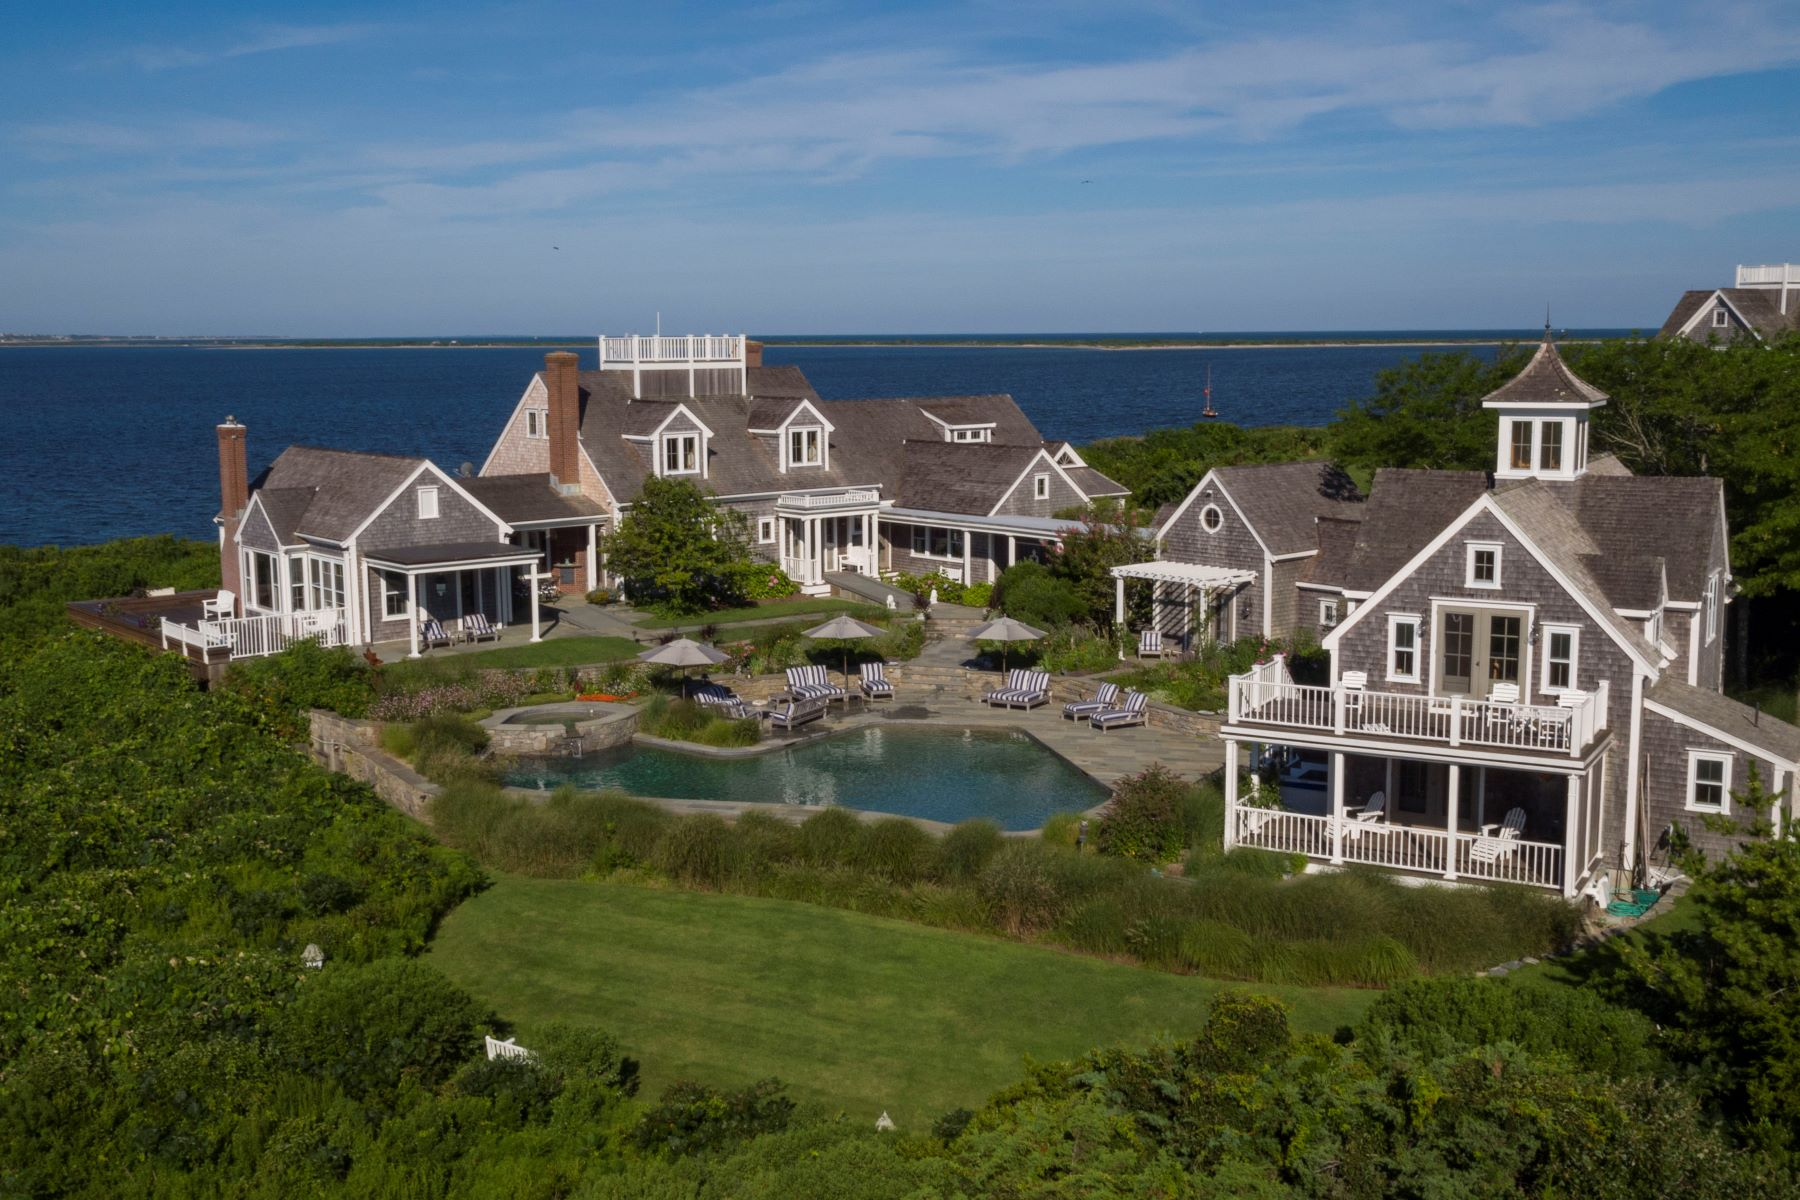 Einfamilienhaus für Verkauf beim Entirely Unique Waterfront Estate 72 Pocomo Road 78 Pocomo Road, Nantucket, Massachusetts, 02554 Vereinigte Staaten